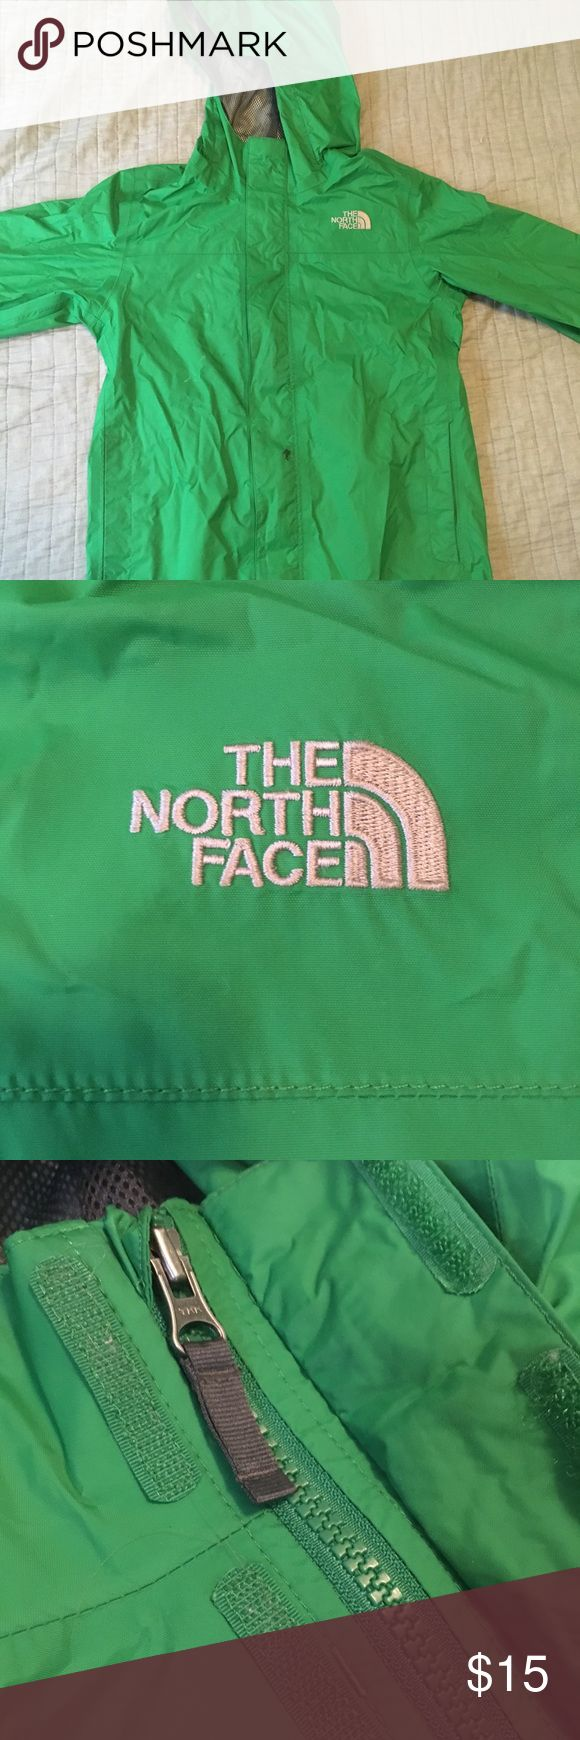 Girls north face raincoat Small stain on the zipper but it works fine The North Face Jackets & Coats